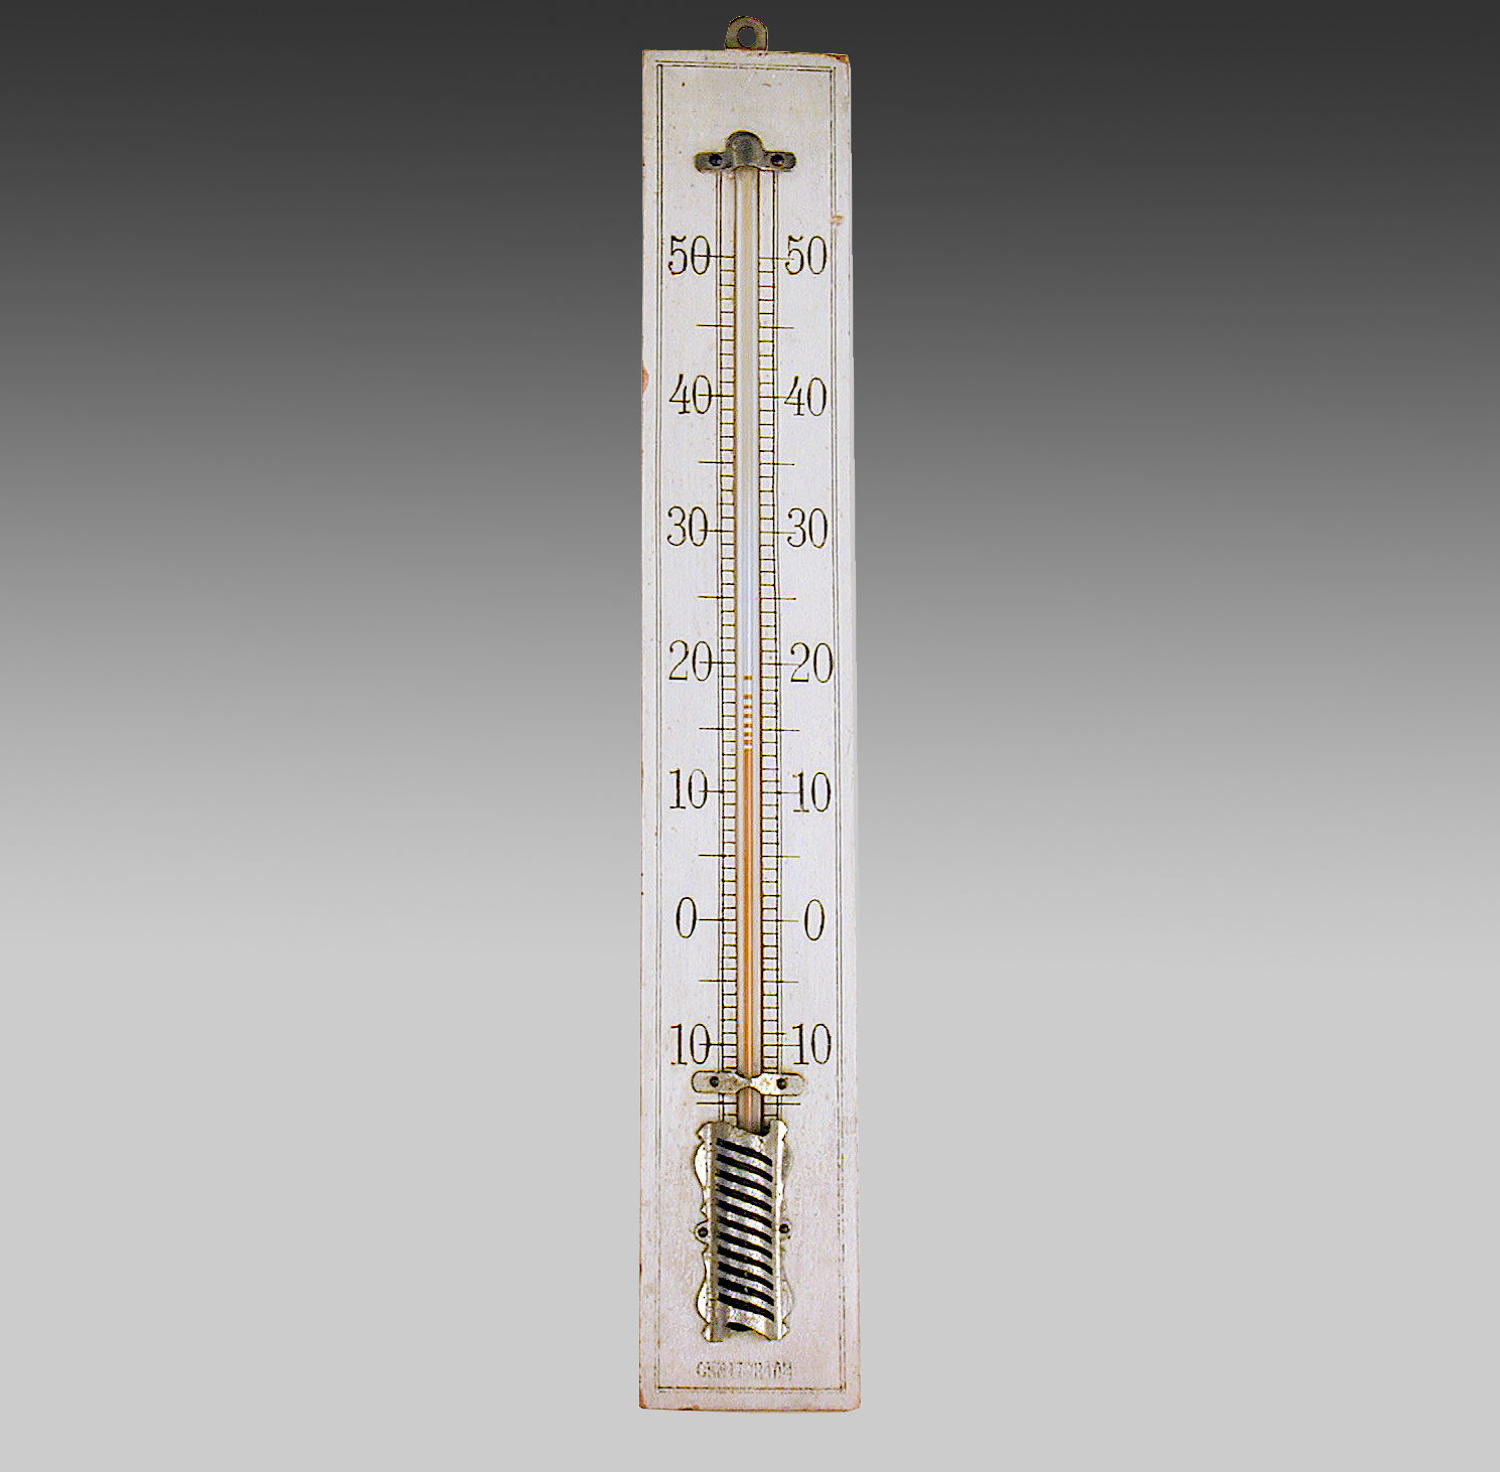 19th century French wall-hanging thermometer